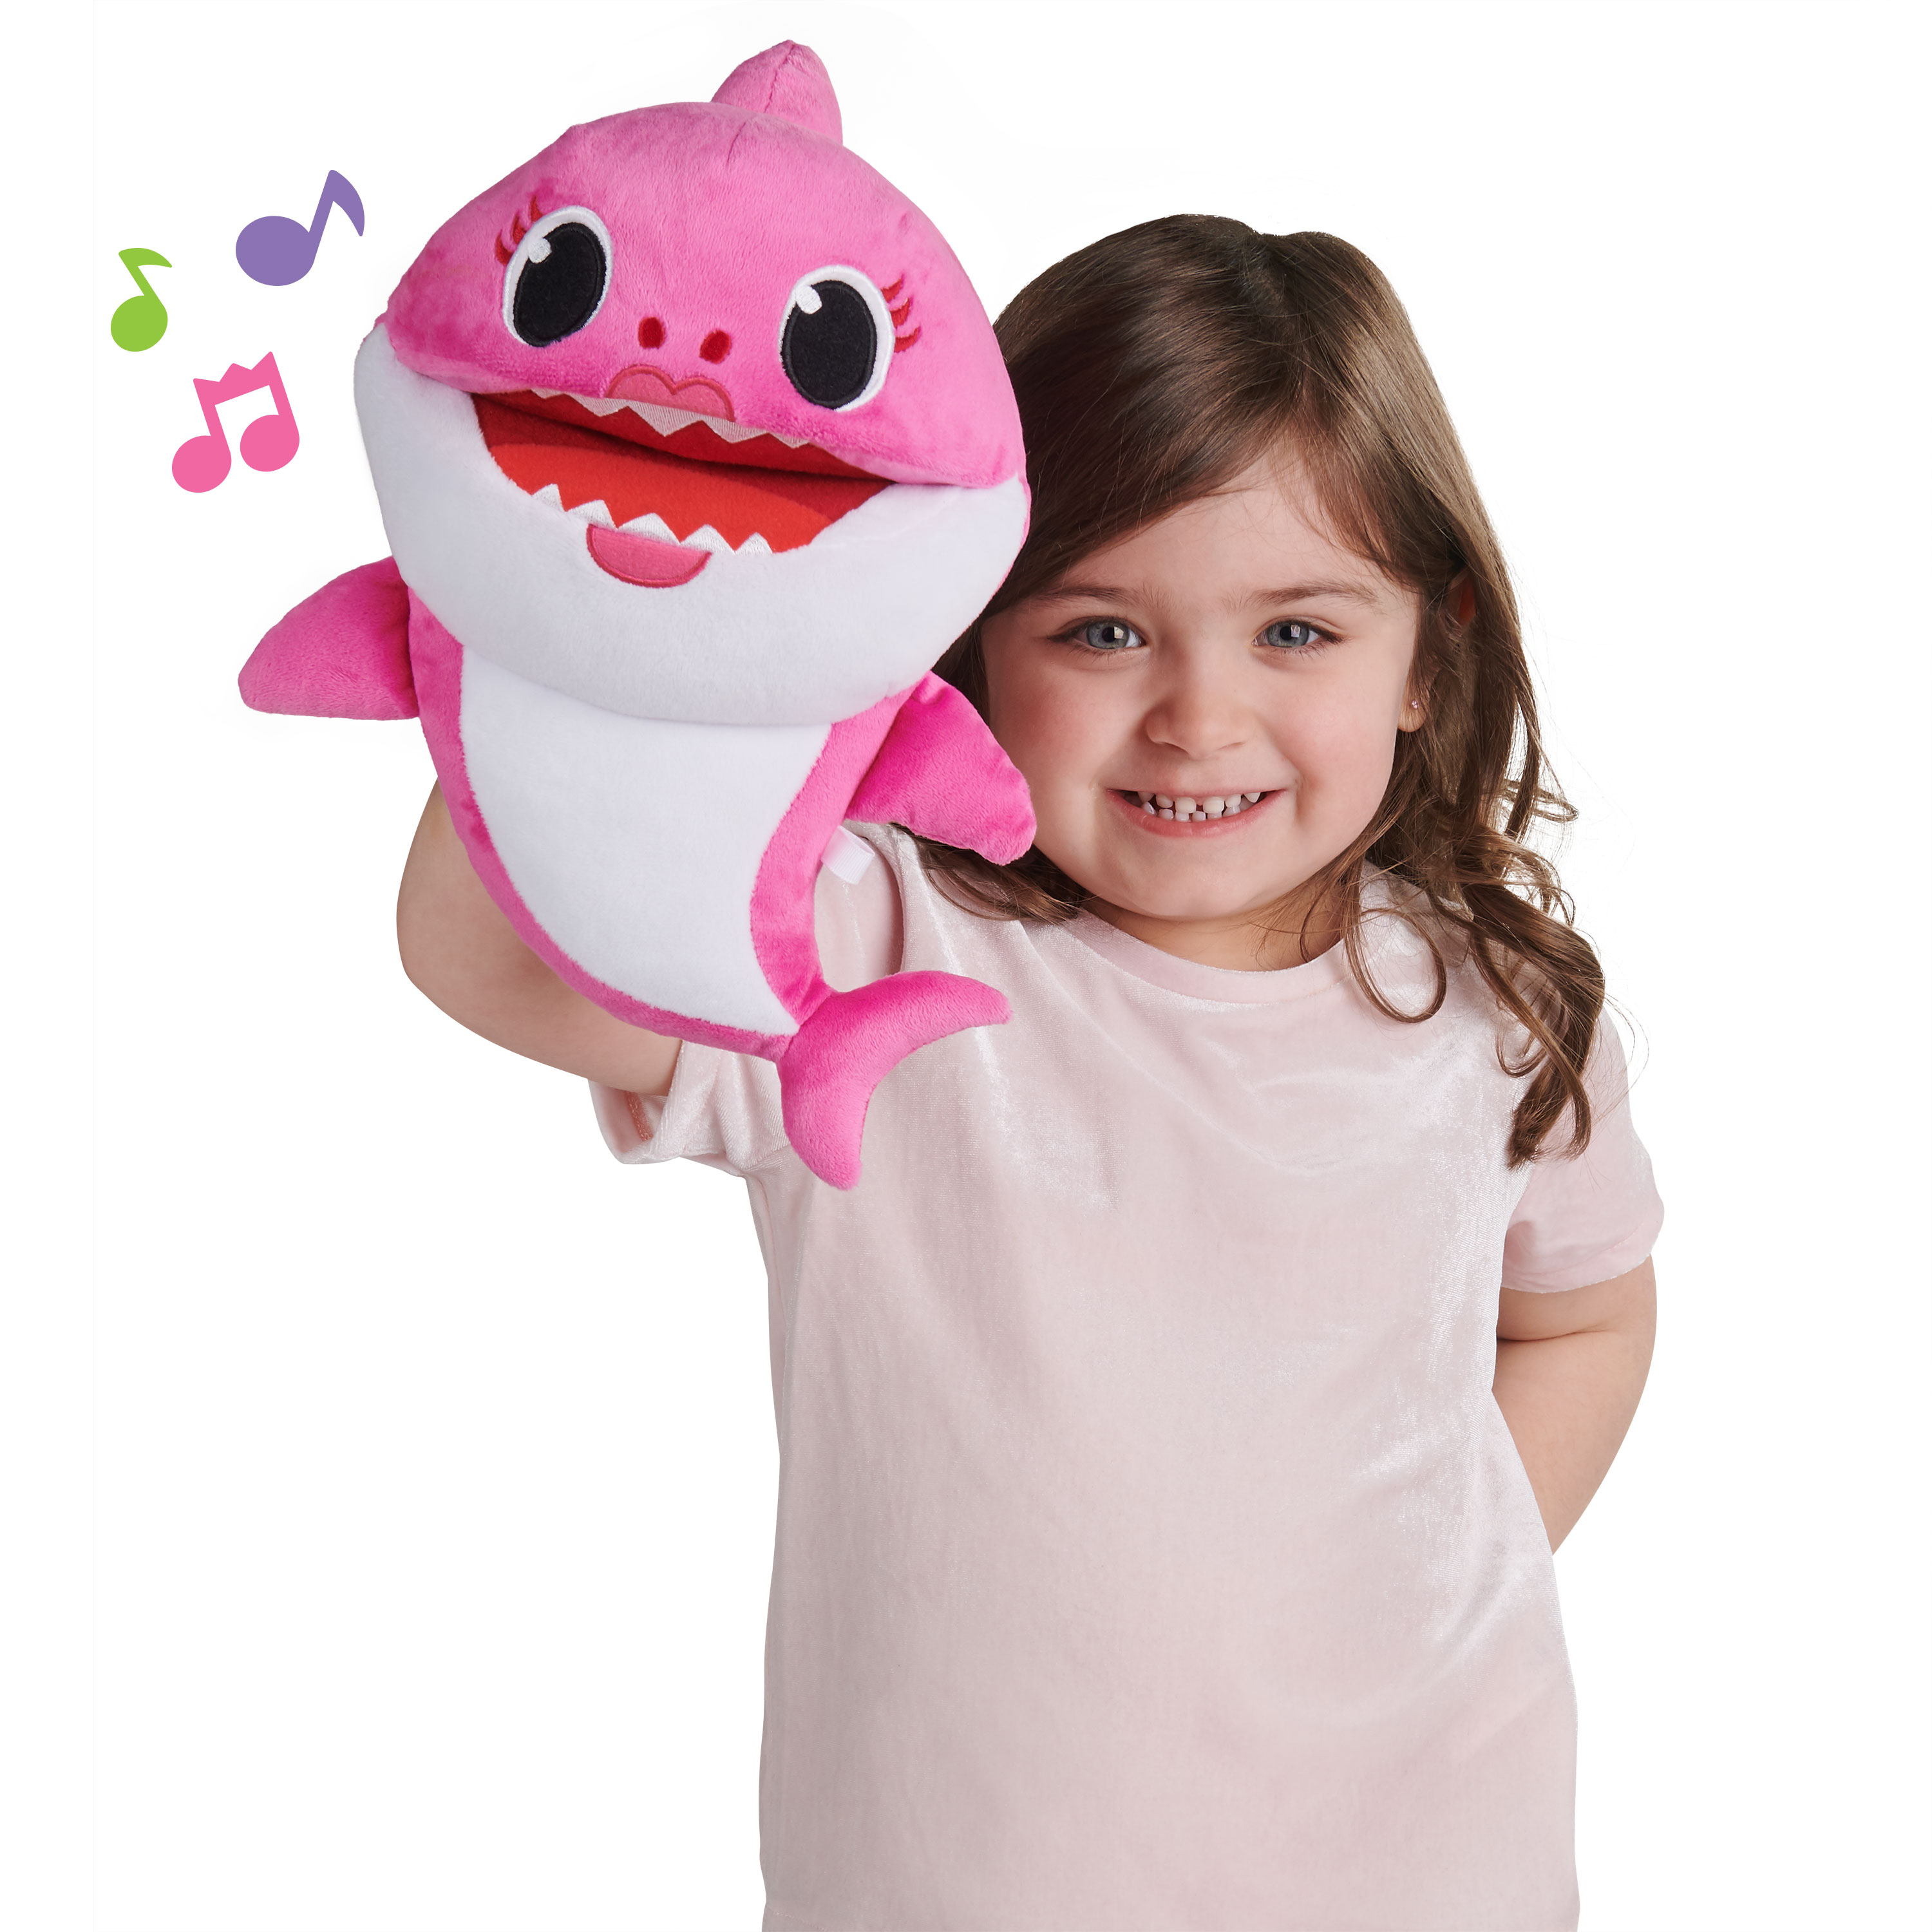 Pinkfong Baby Shark Song Puppets with Tempo Control